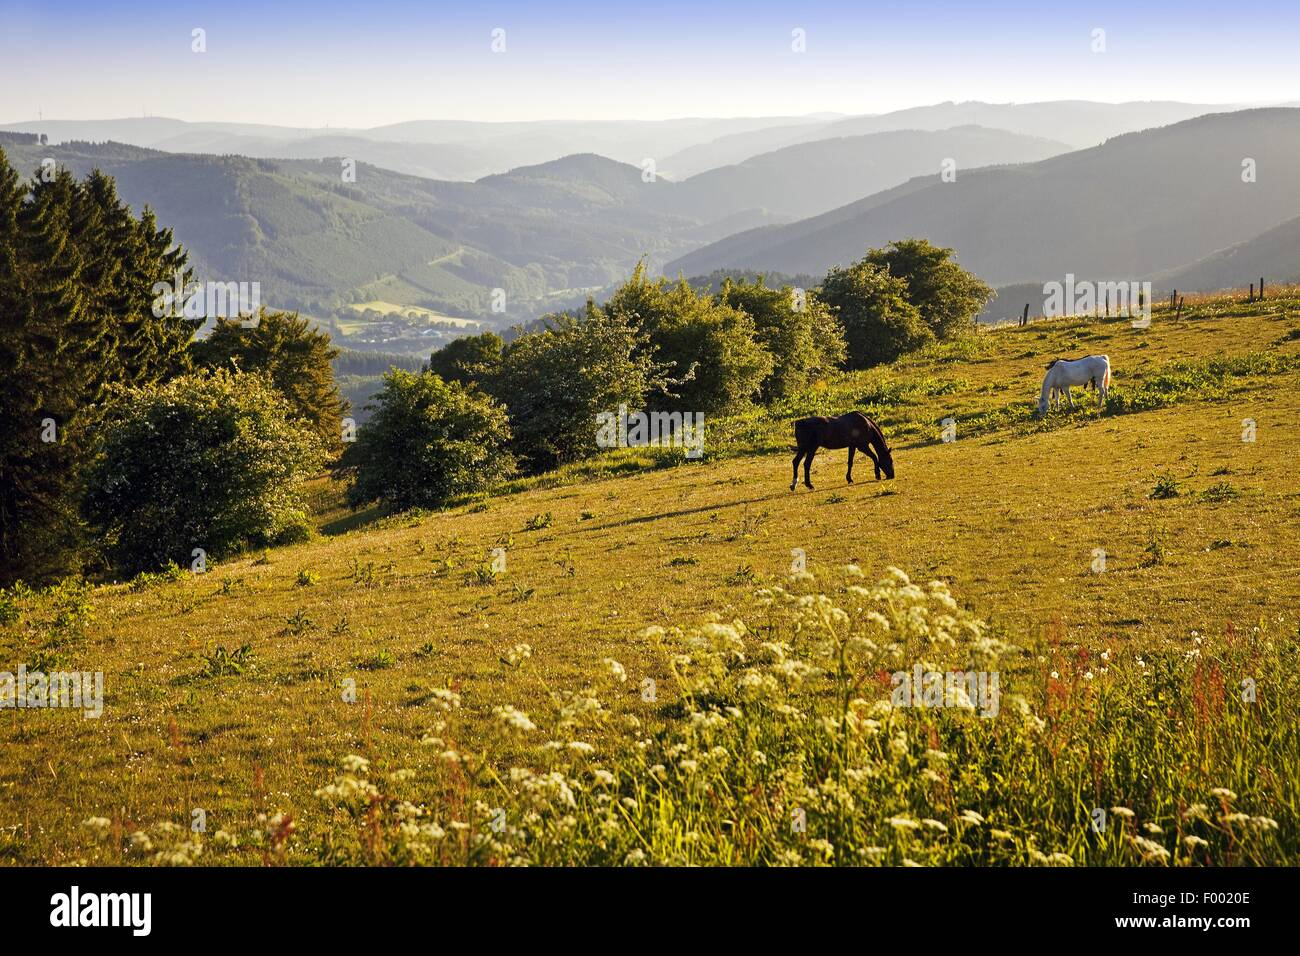 domestic horse (Equus przewalskii f. caballus), lookout over the landscape with two grazing horses near Wildewiese, - Stock Image